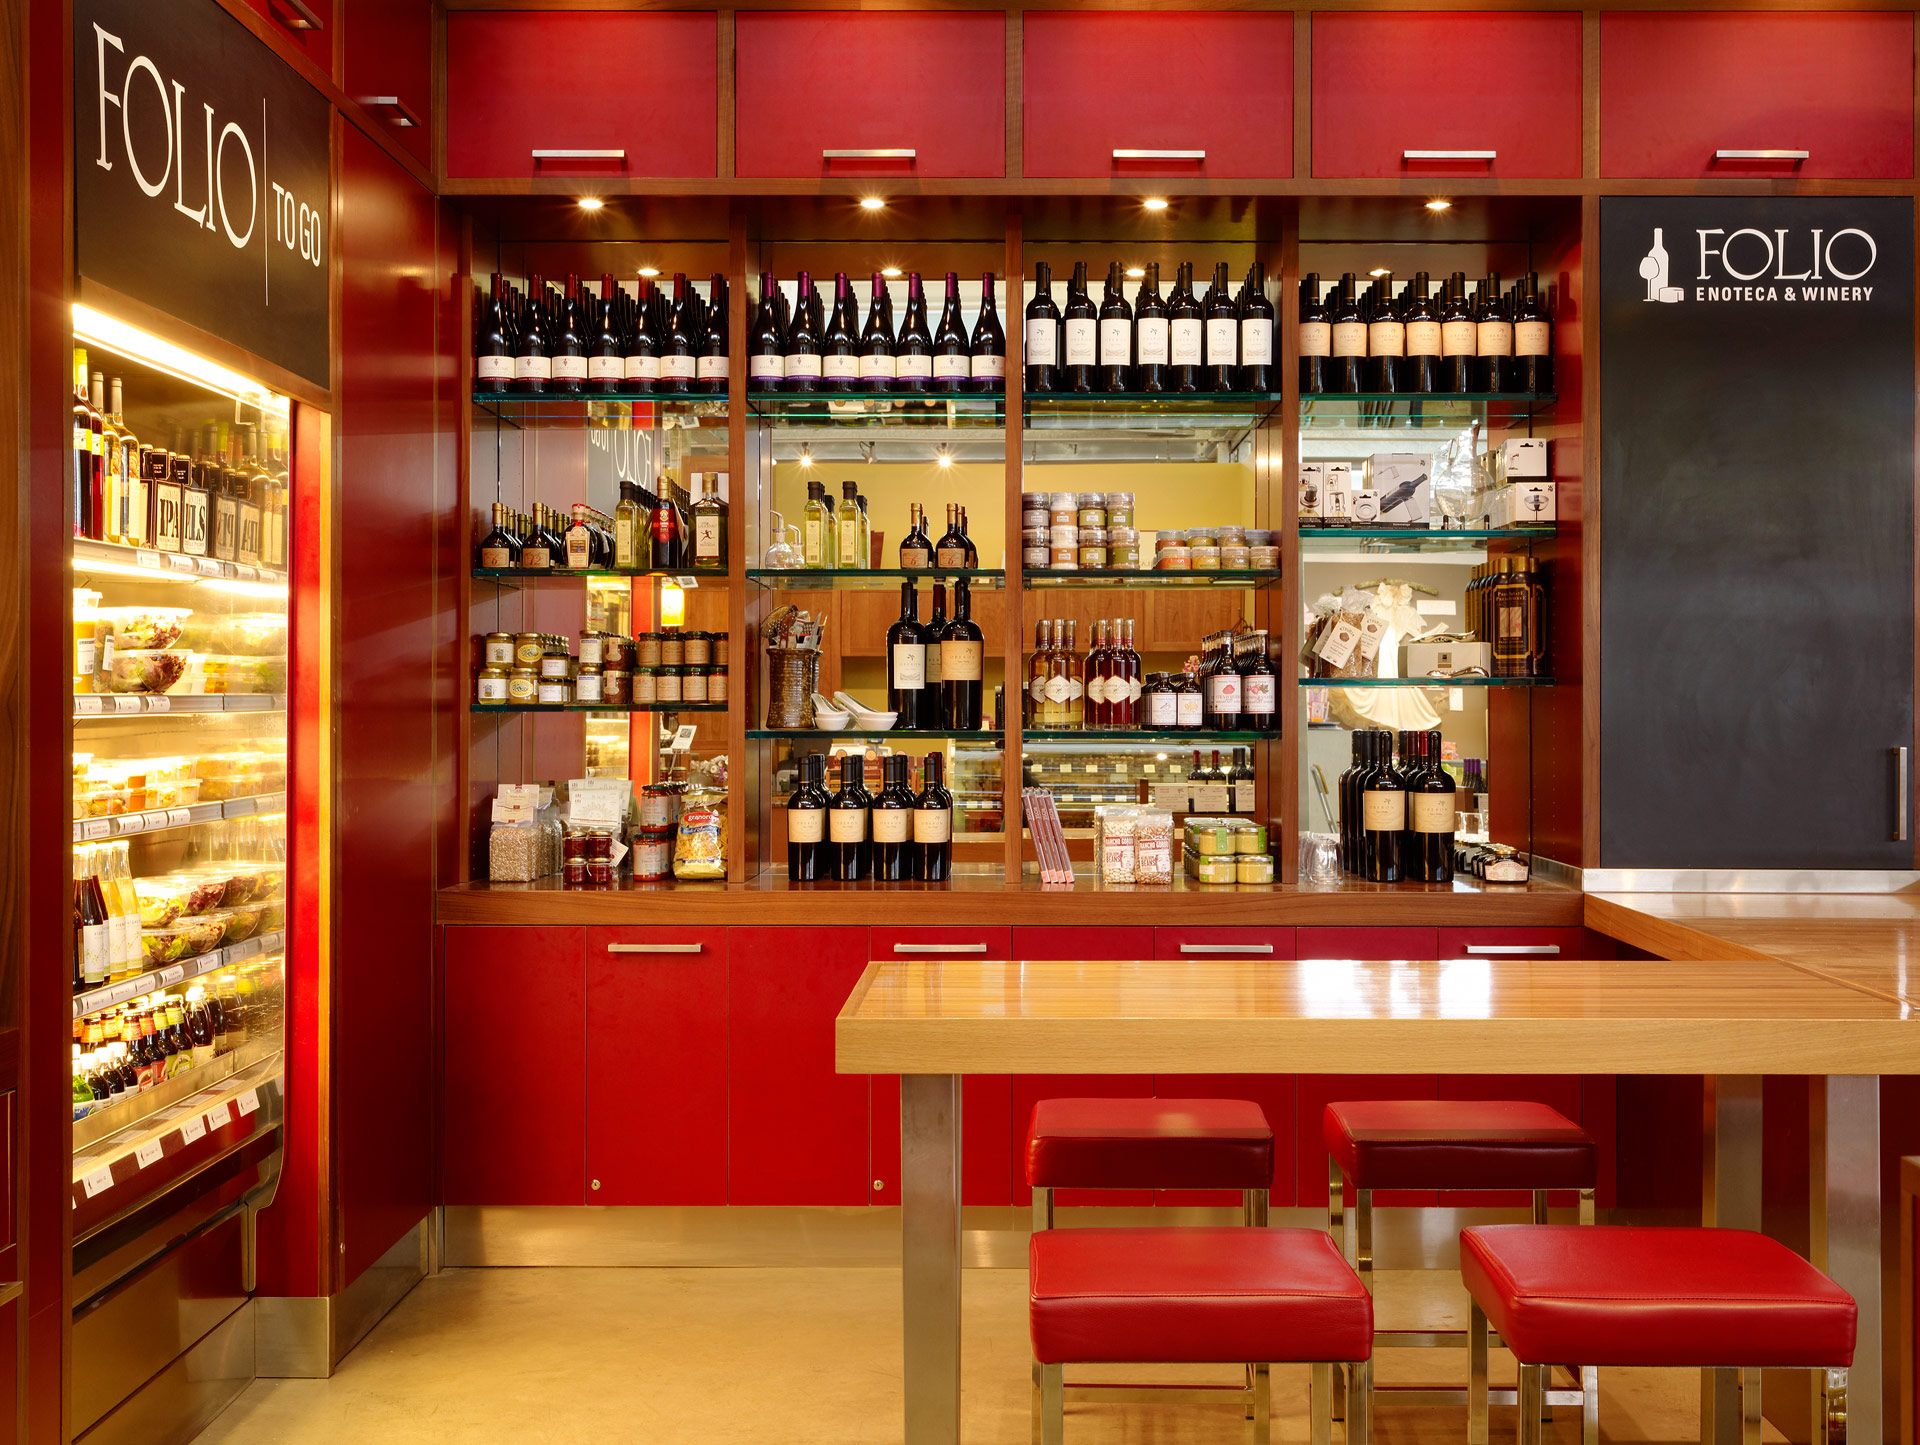 Folio Enoteca & Winery restaurant design